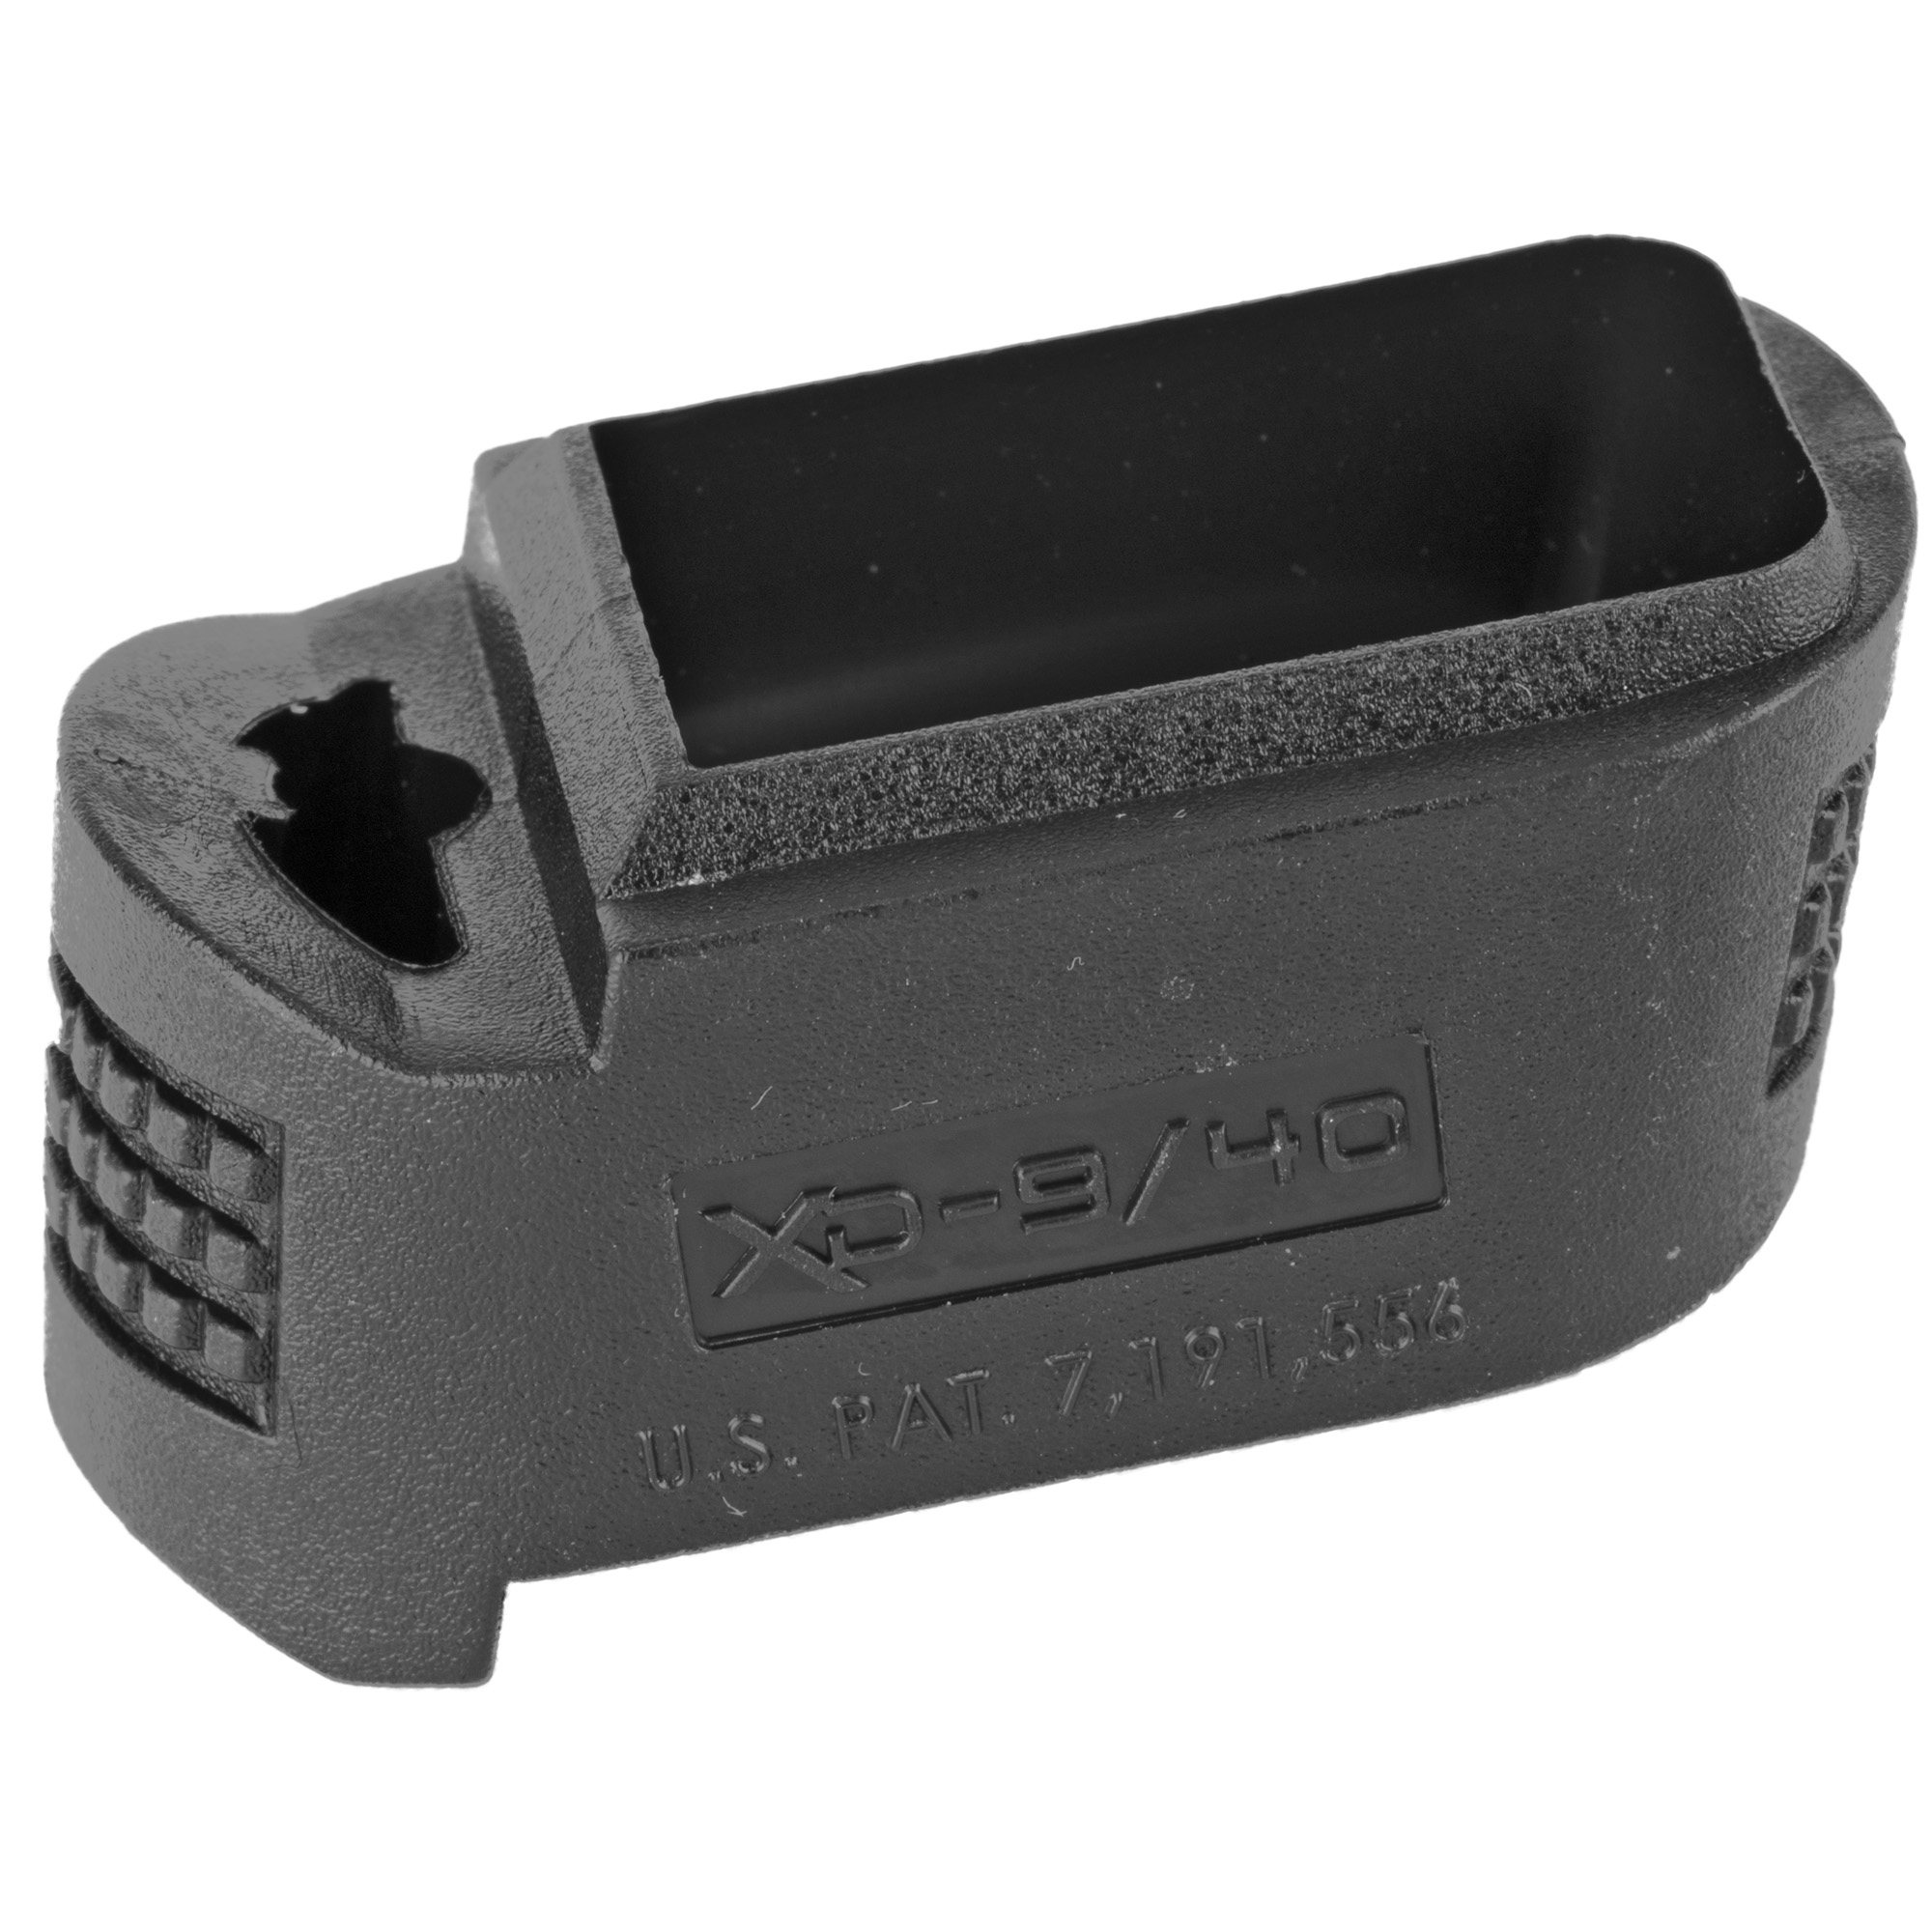 The Springfield Mag Xtension allows the use of full size magazines in subcompact pistols comfortably.